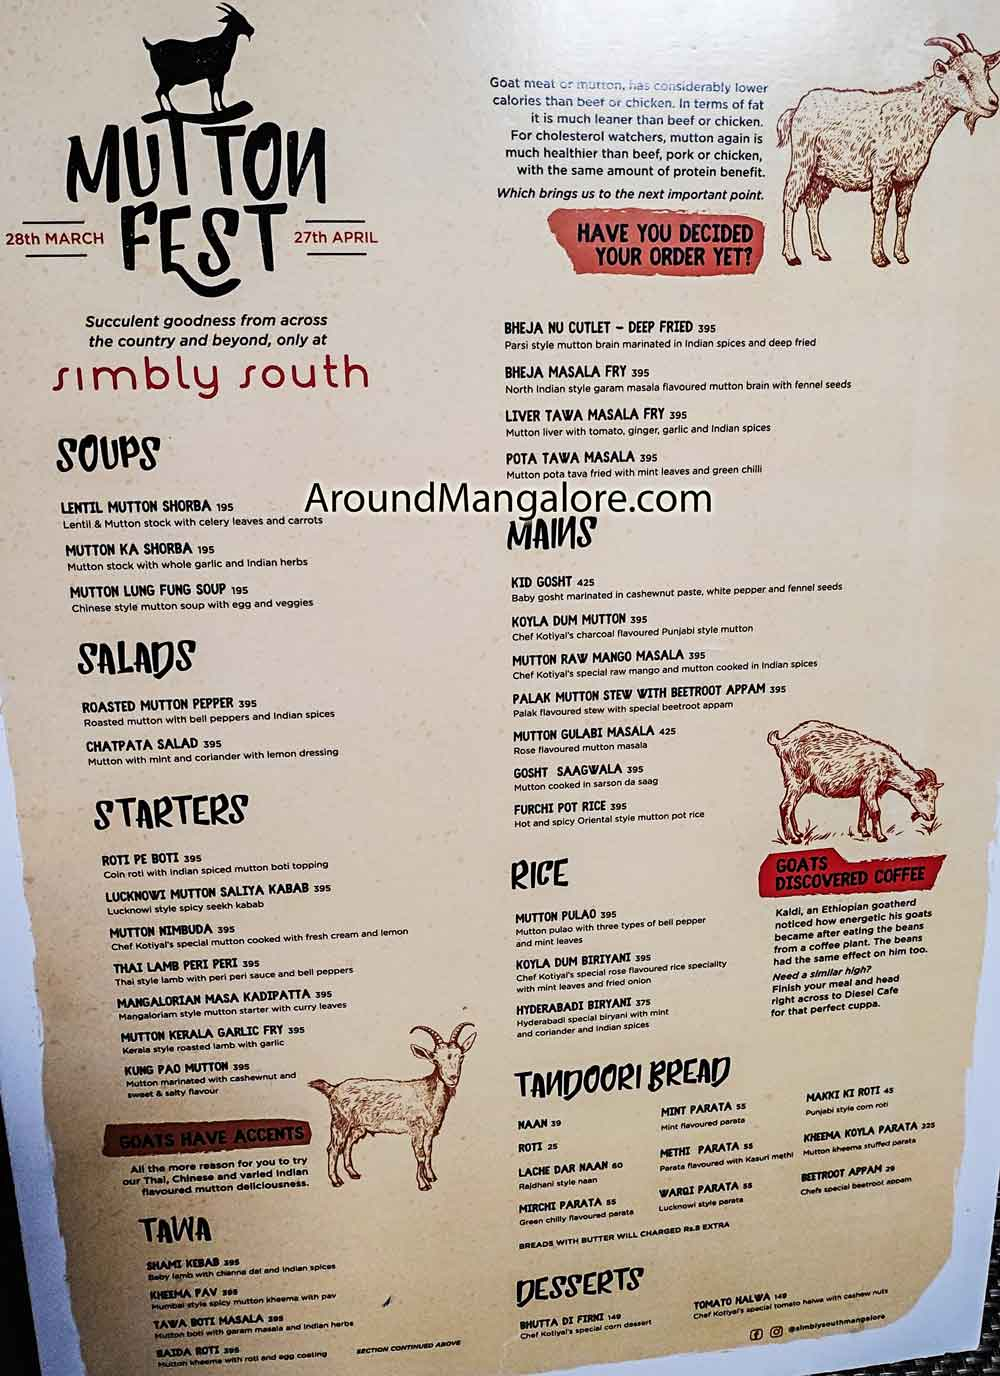 Food Menu - - Mutton Fest - 28 Mar to 27 Apr 2019 - Simbly South, Mangalore